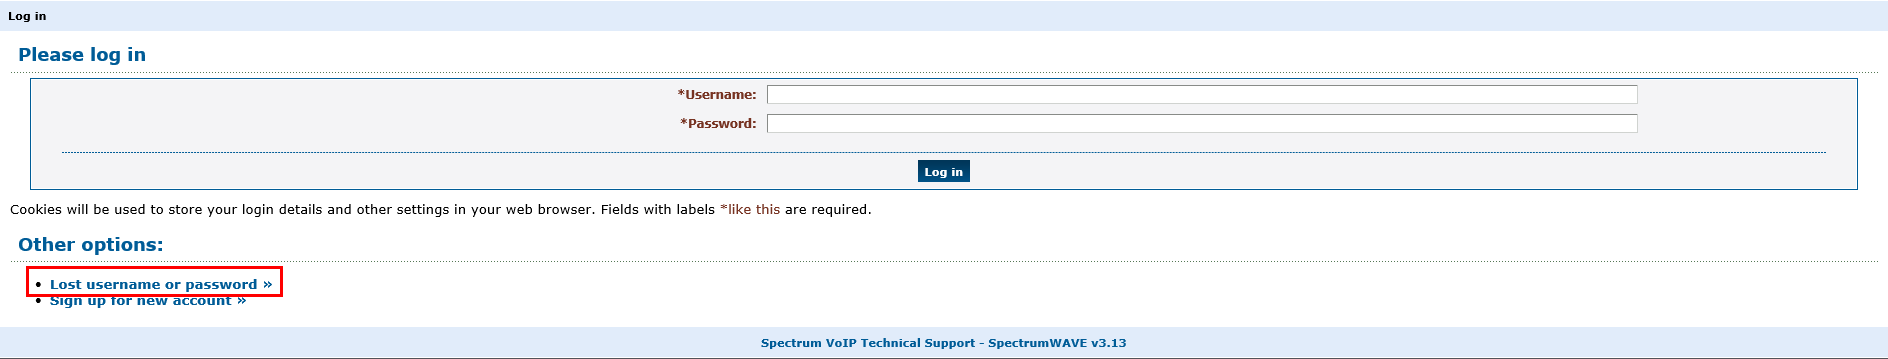 Finding and Resetting your Enswitch Portal Login – SpectrumVoIP Support